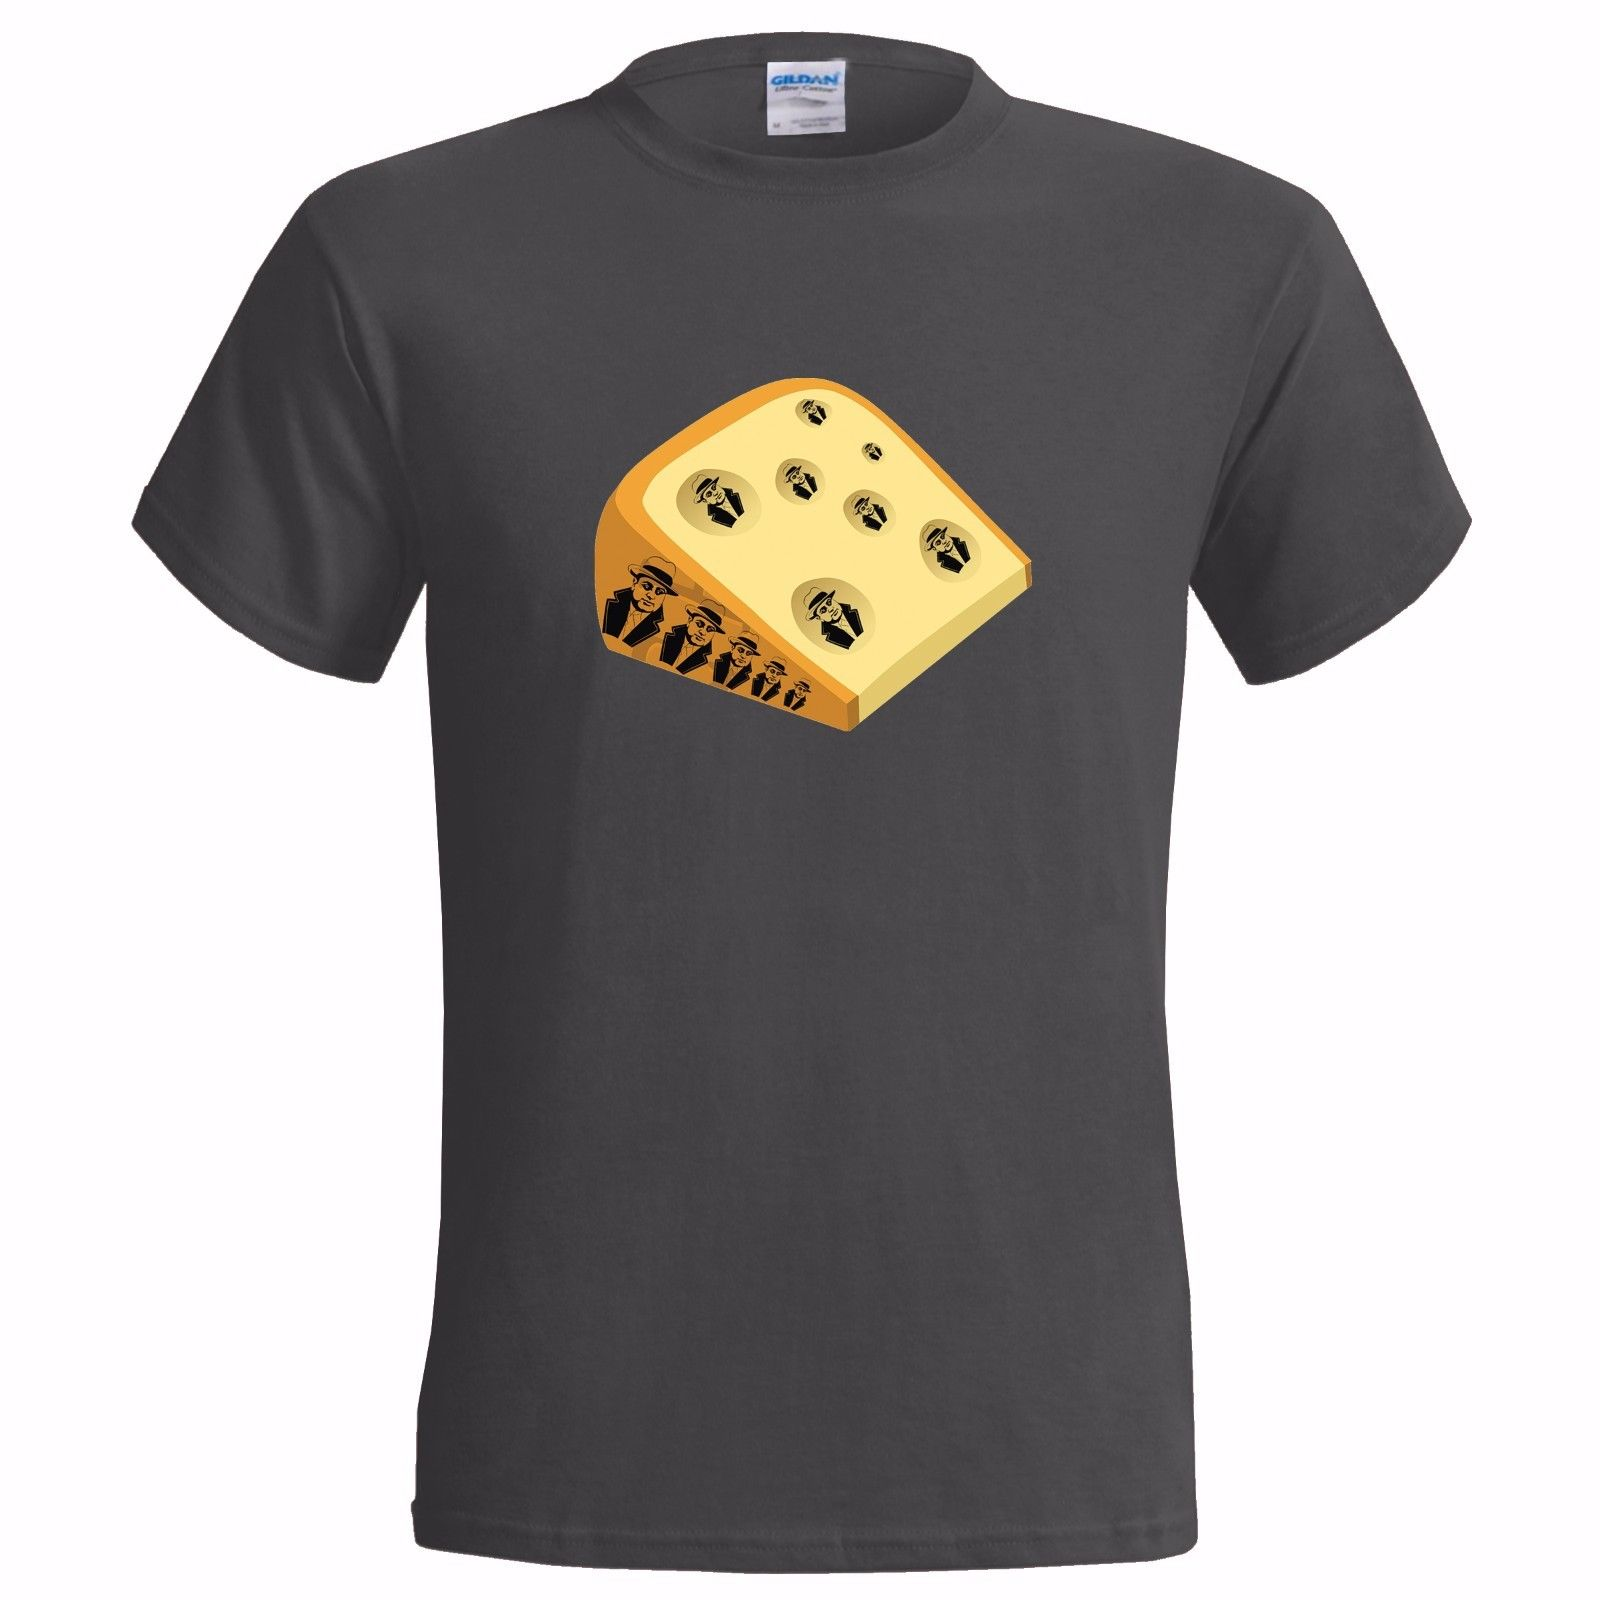 MASS CAPONE CHEESE FUNNY PUN MENS T SHIRT BAD JOKE GIFT PRESENT LOVER PUNS AL